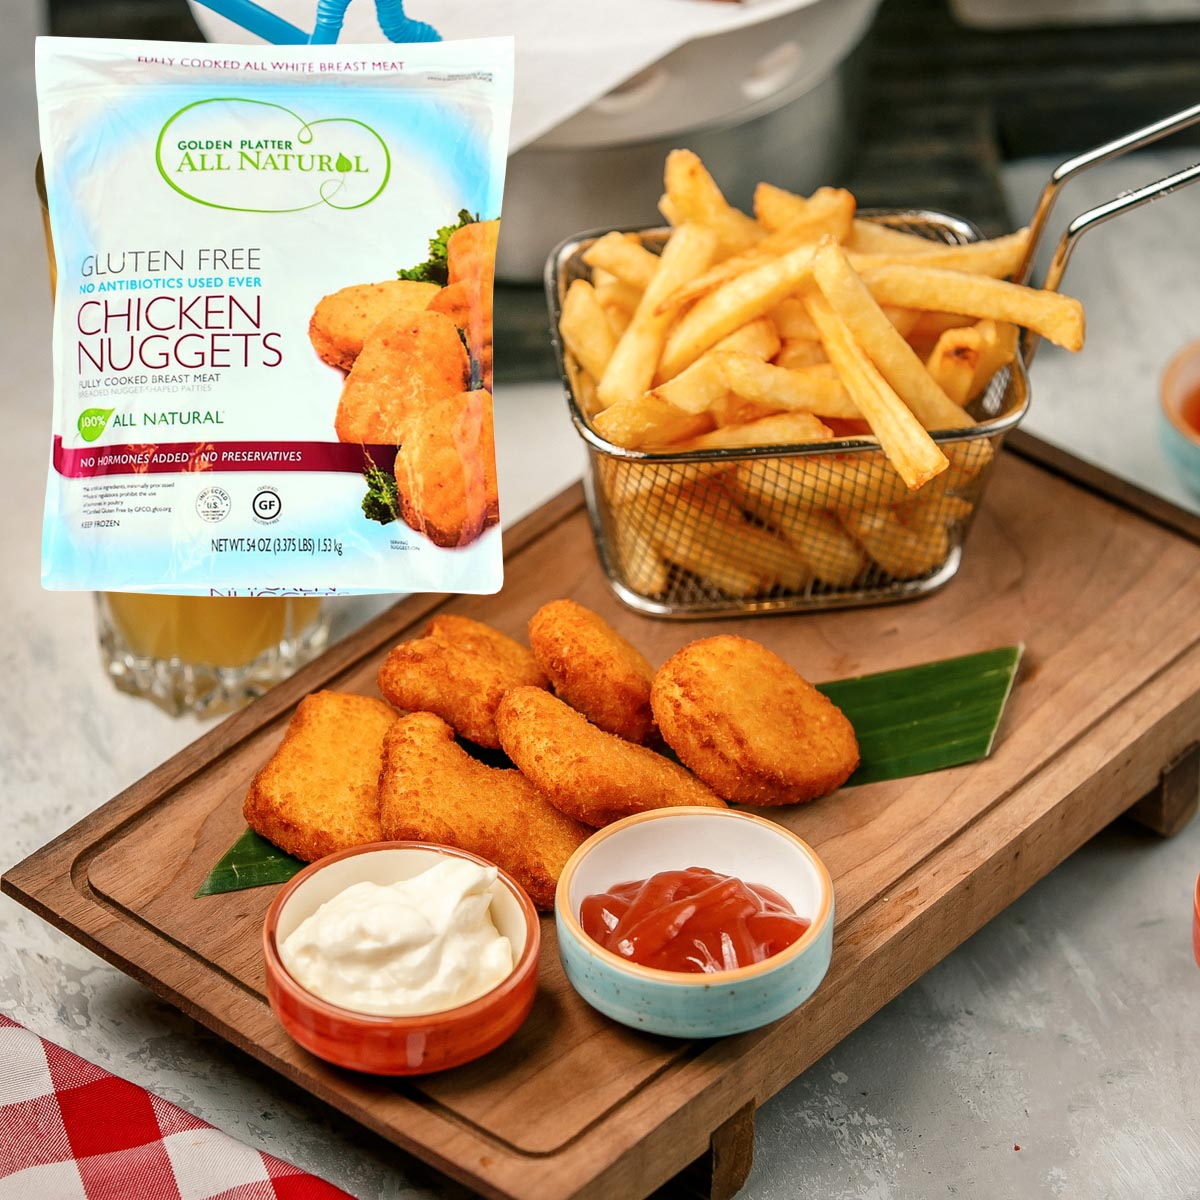 Golden Platter Gluten Free Chicken Nuggerts Packaged Feature